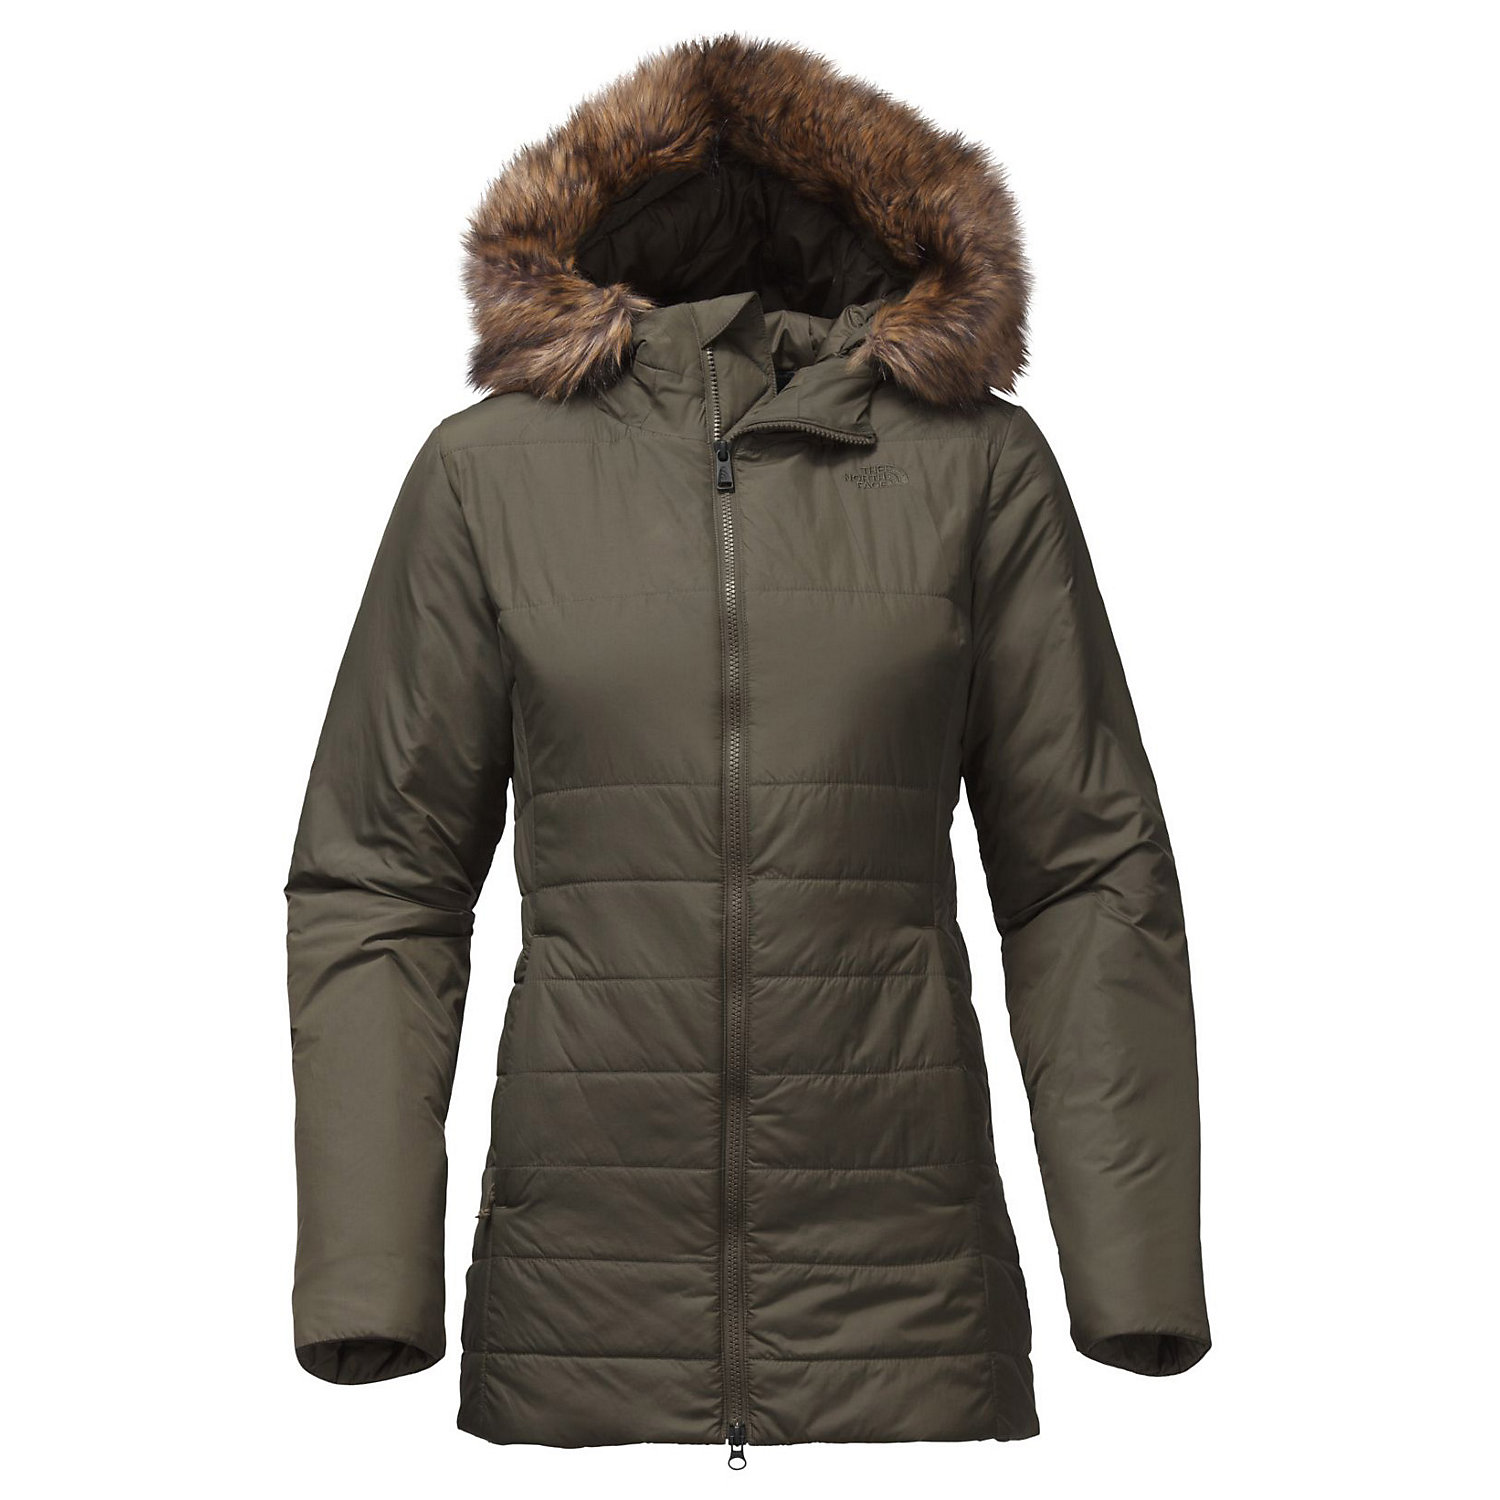 1291faa76 The North Face Women's Harway Insulated Parka